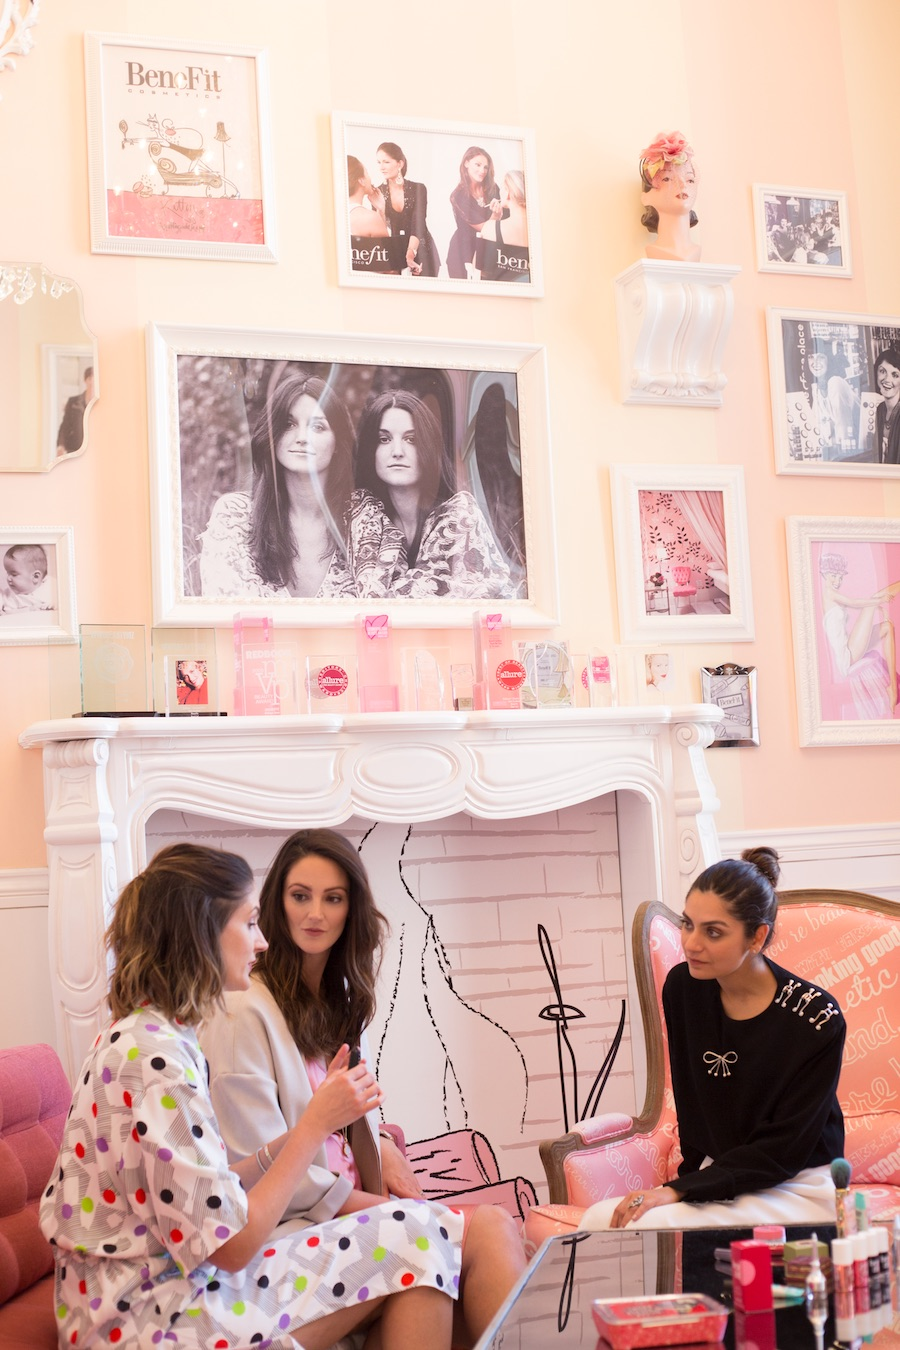 Inside Benefit's headquarters